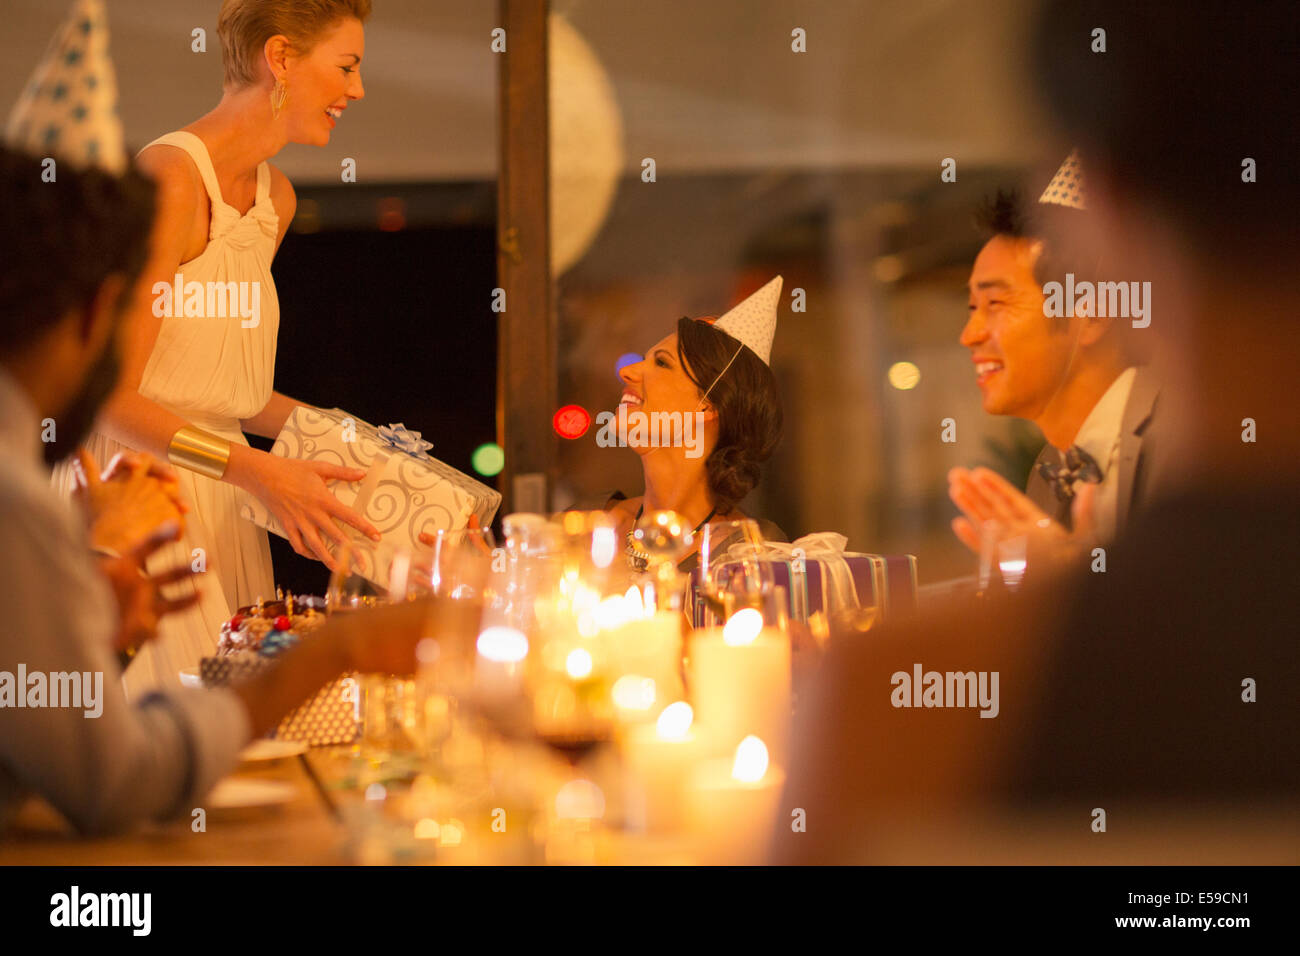 Woman giving ami présent at Birthday party Photo Stock